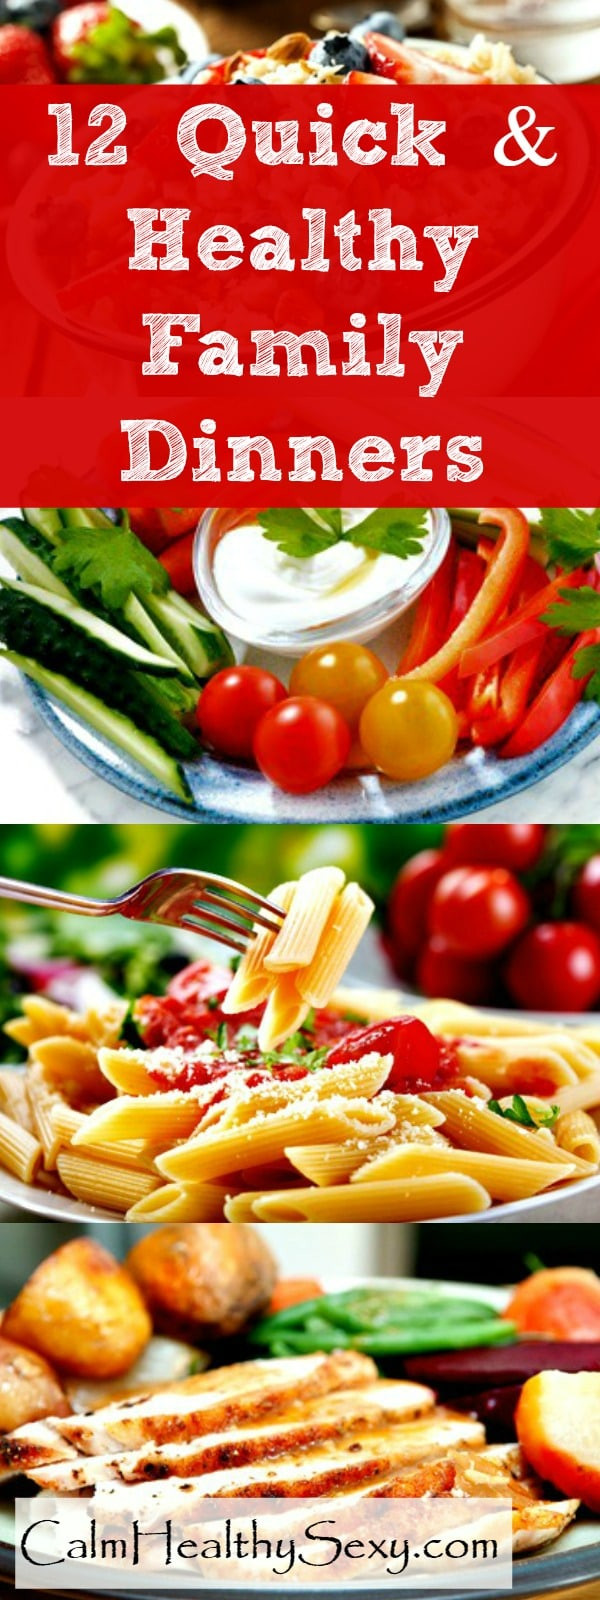 Fast Easy Healthy Dinner  12 Quick and Healthy Family Dinners For Busy Moms with